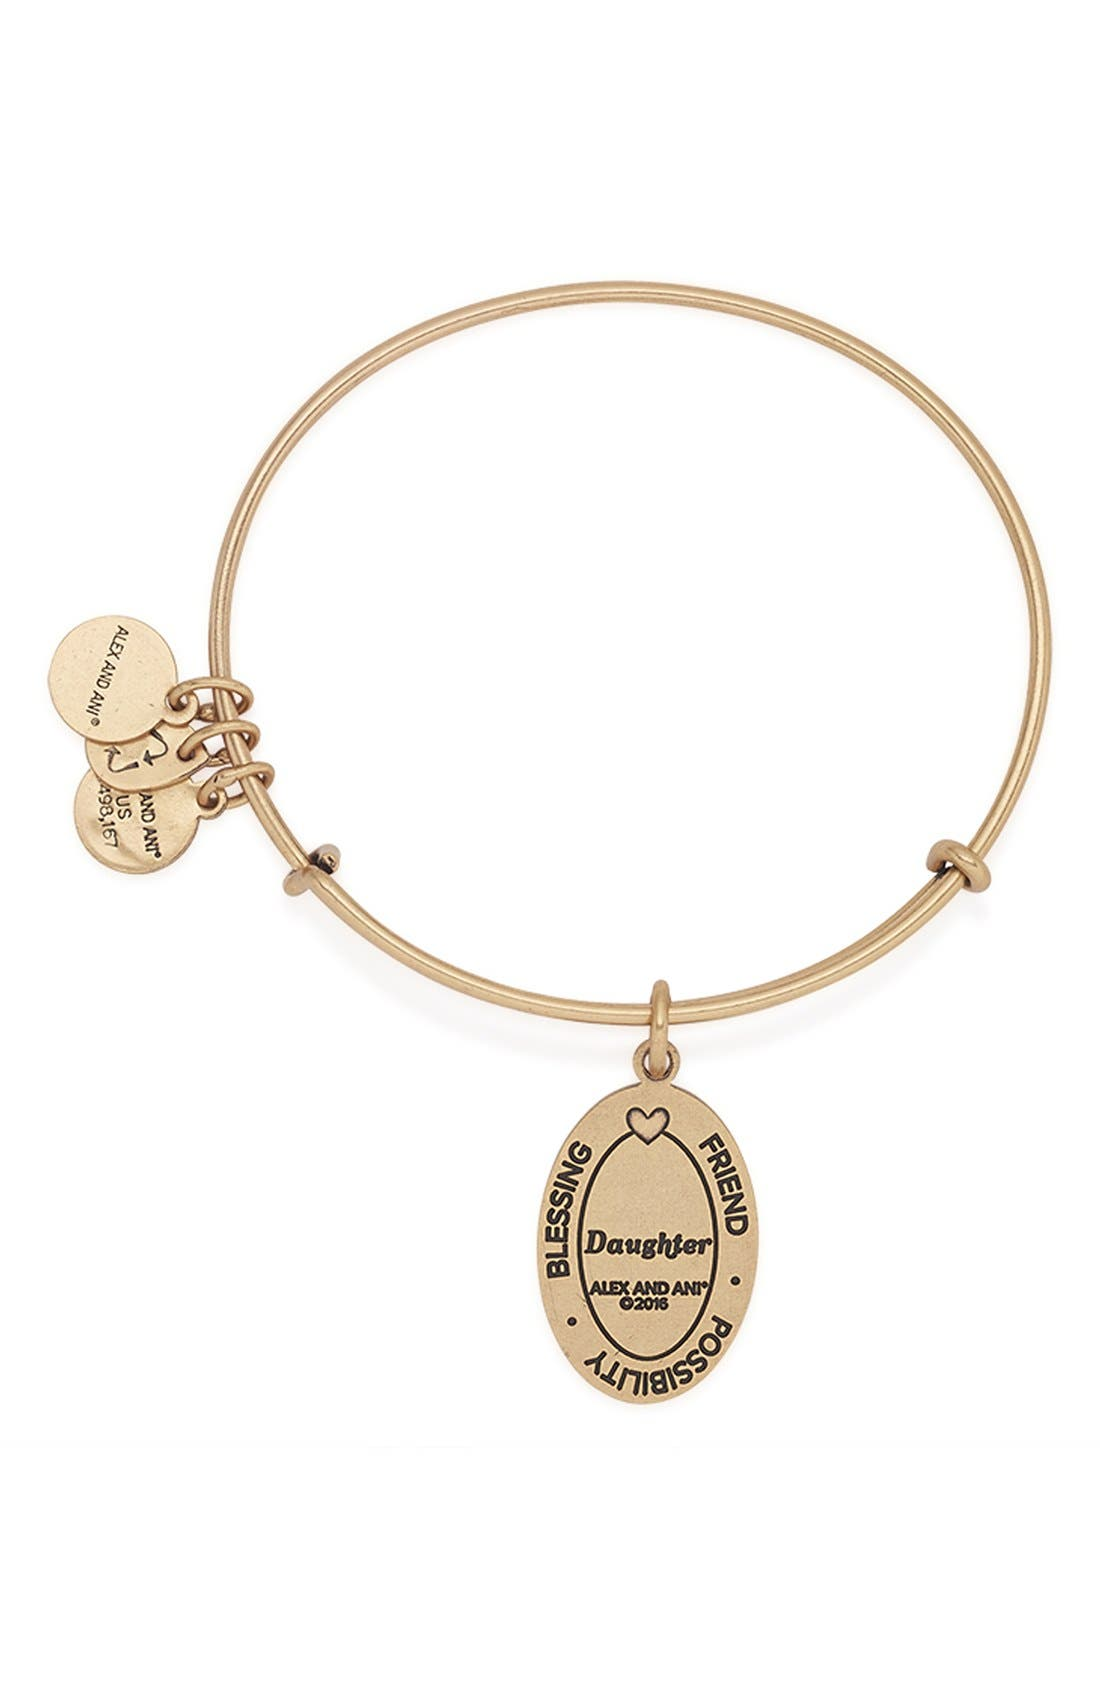 'I Love You Daughter' Expandable Wire Bangle,                             Alternate thumbnail 4, color,                             710